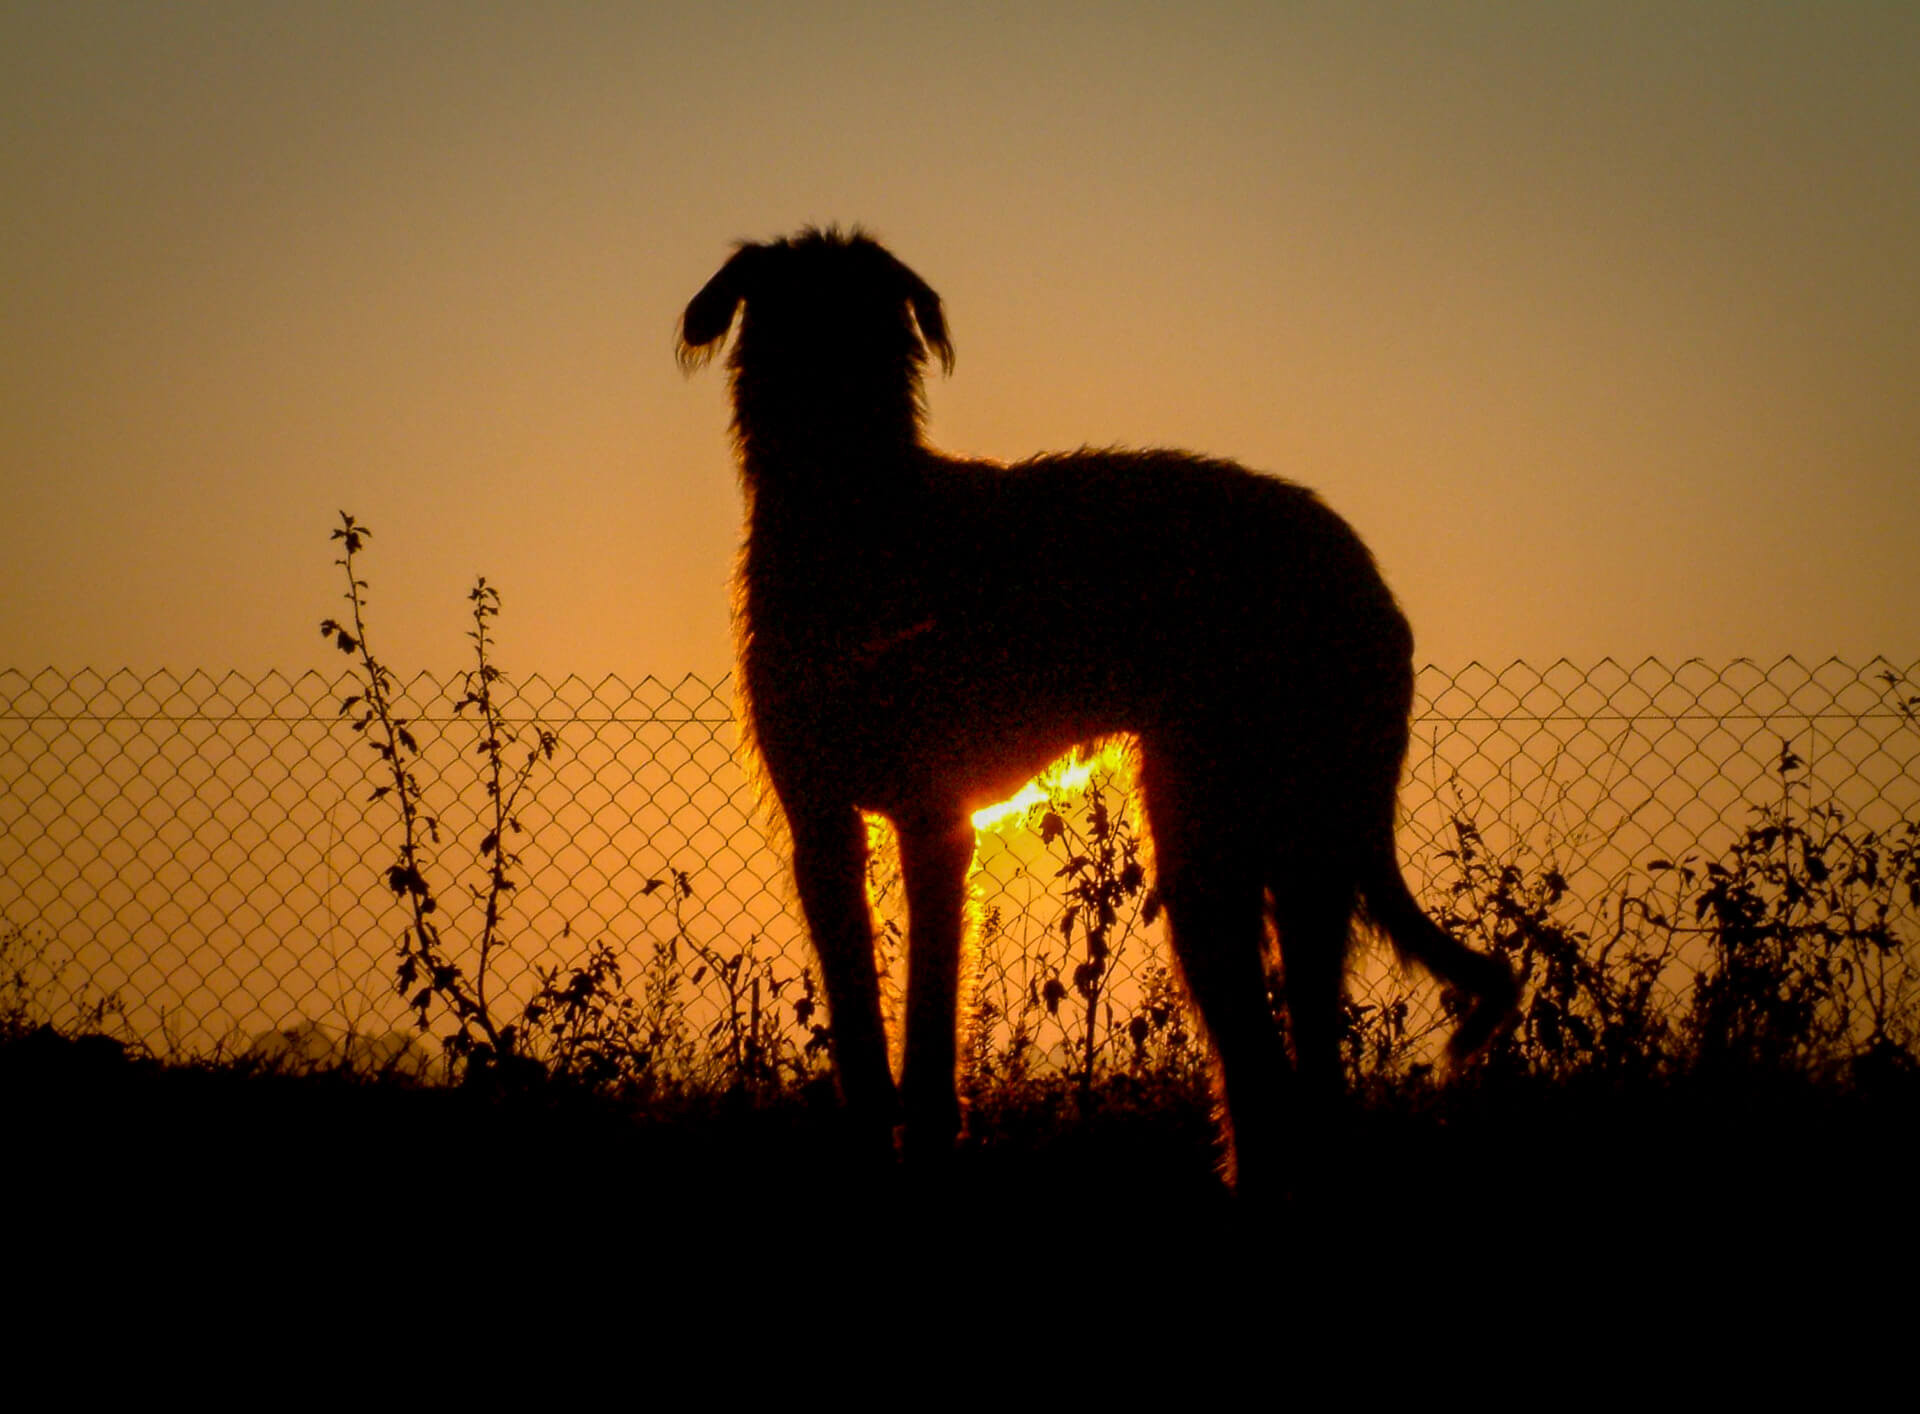 A picture of Dexter Wooluff, an Irish Wolfhound, pictured in silhouette looking over a low fence at the sunrise.